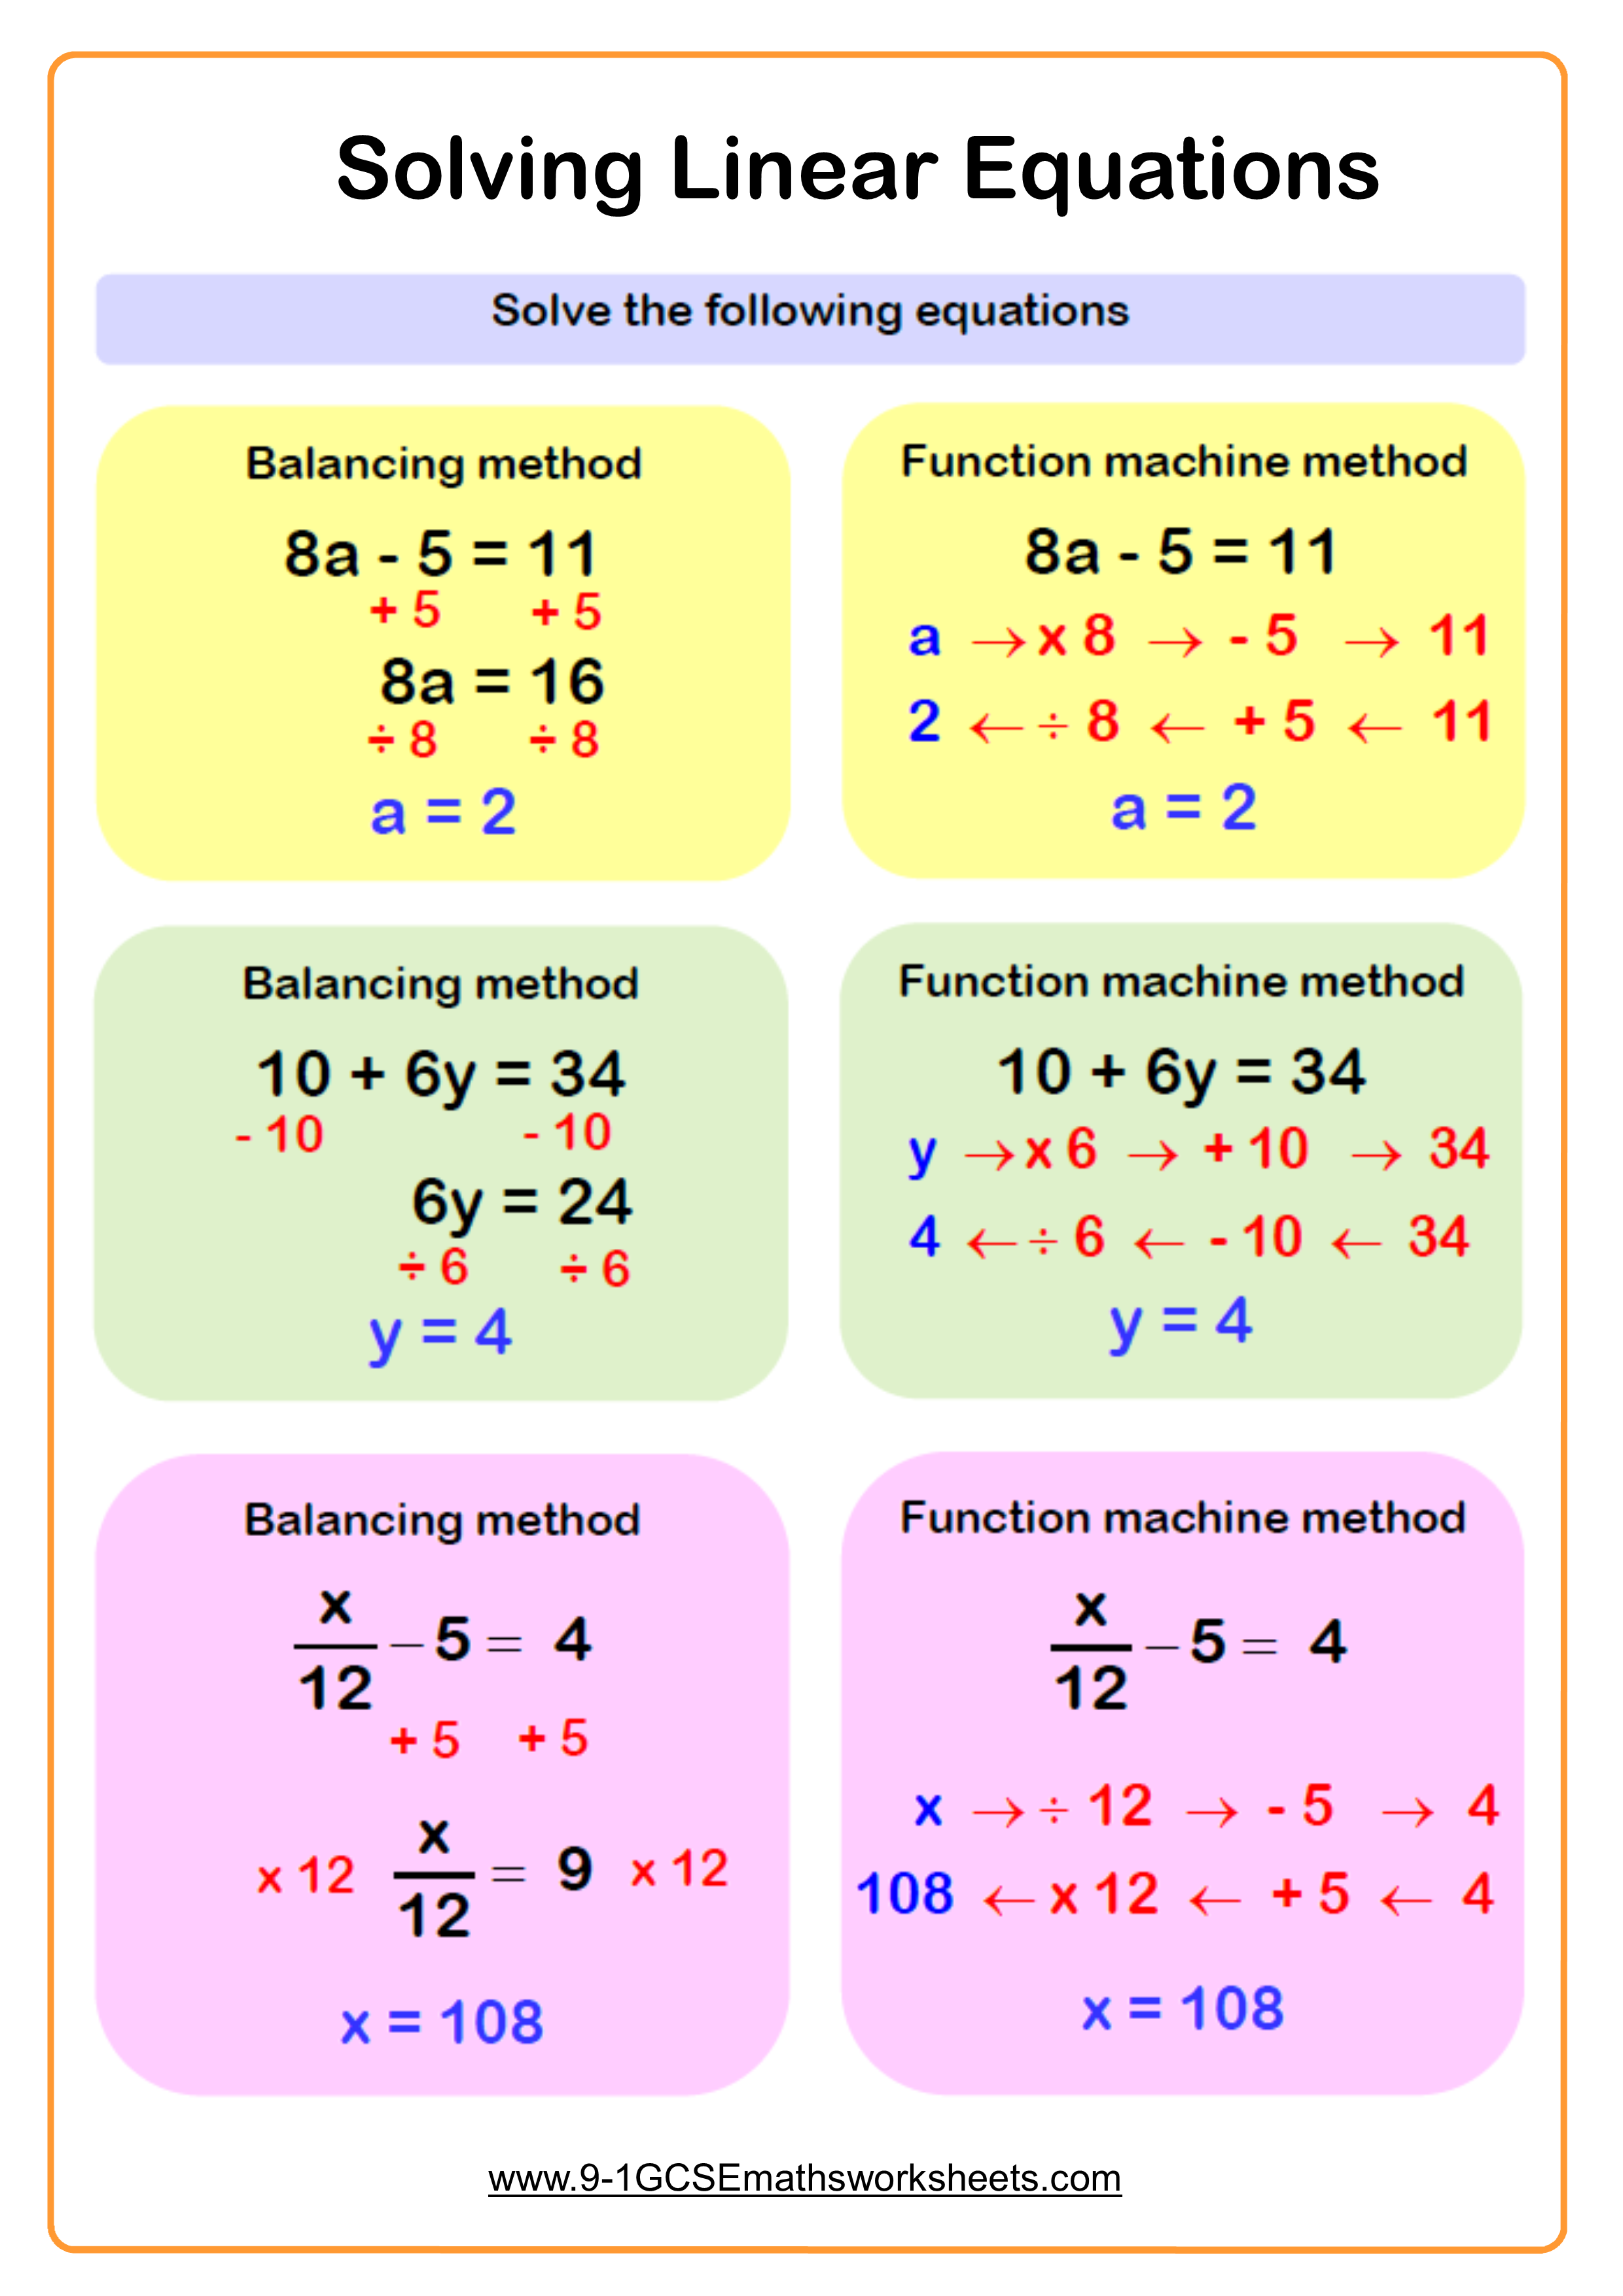 Pin On Maths Worksheets In 2021 Solving Linear Equations Solving Equations Math Methods